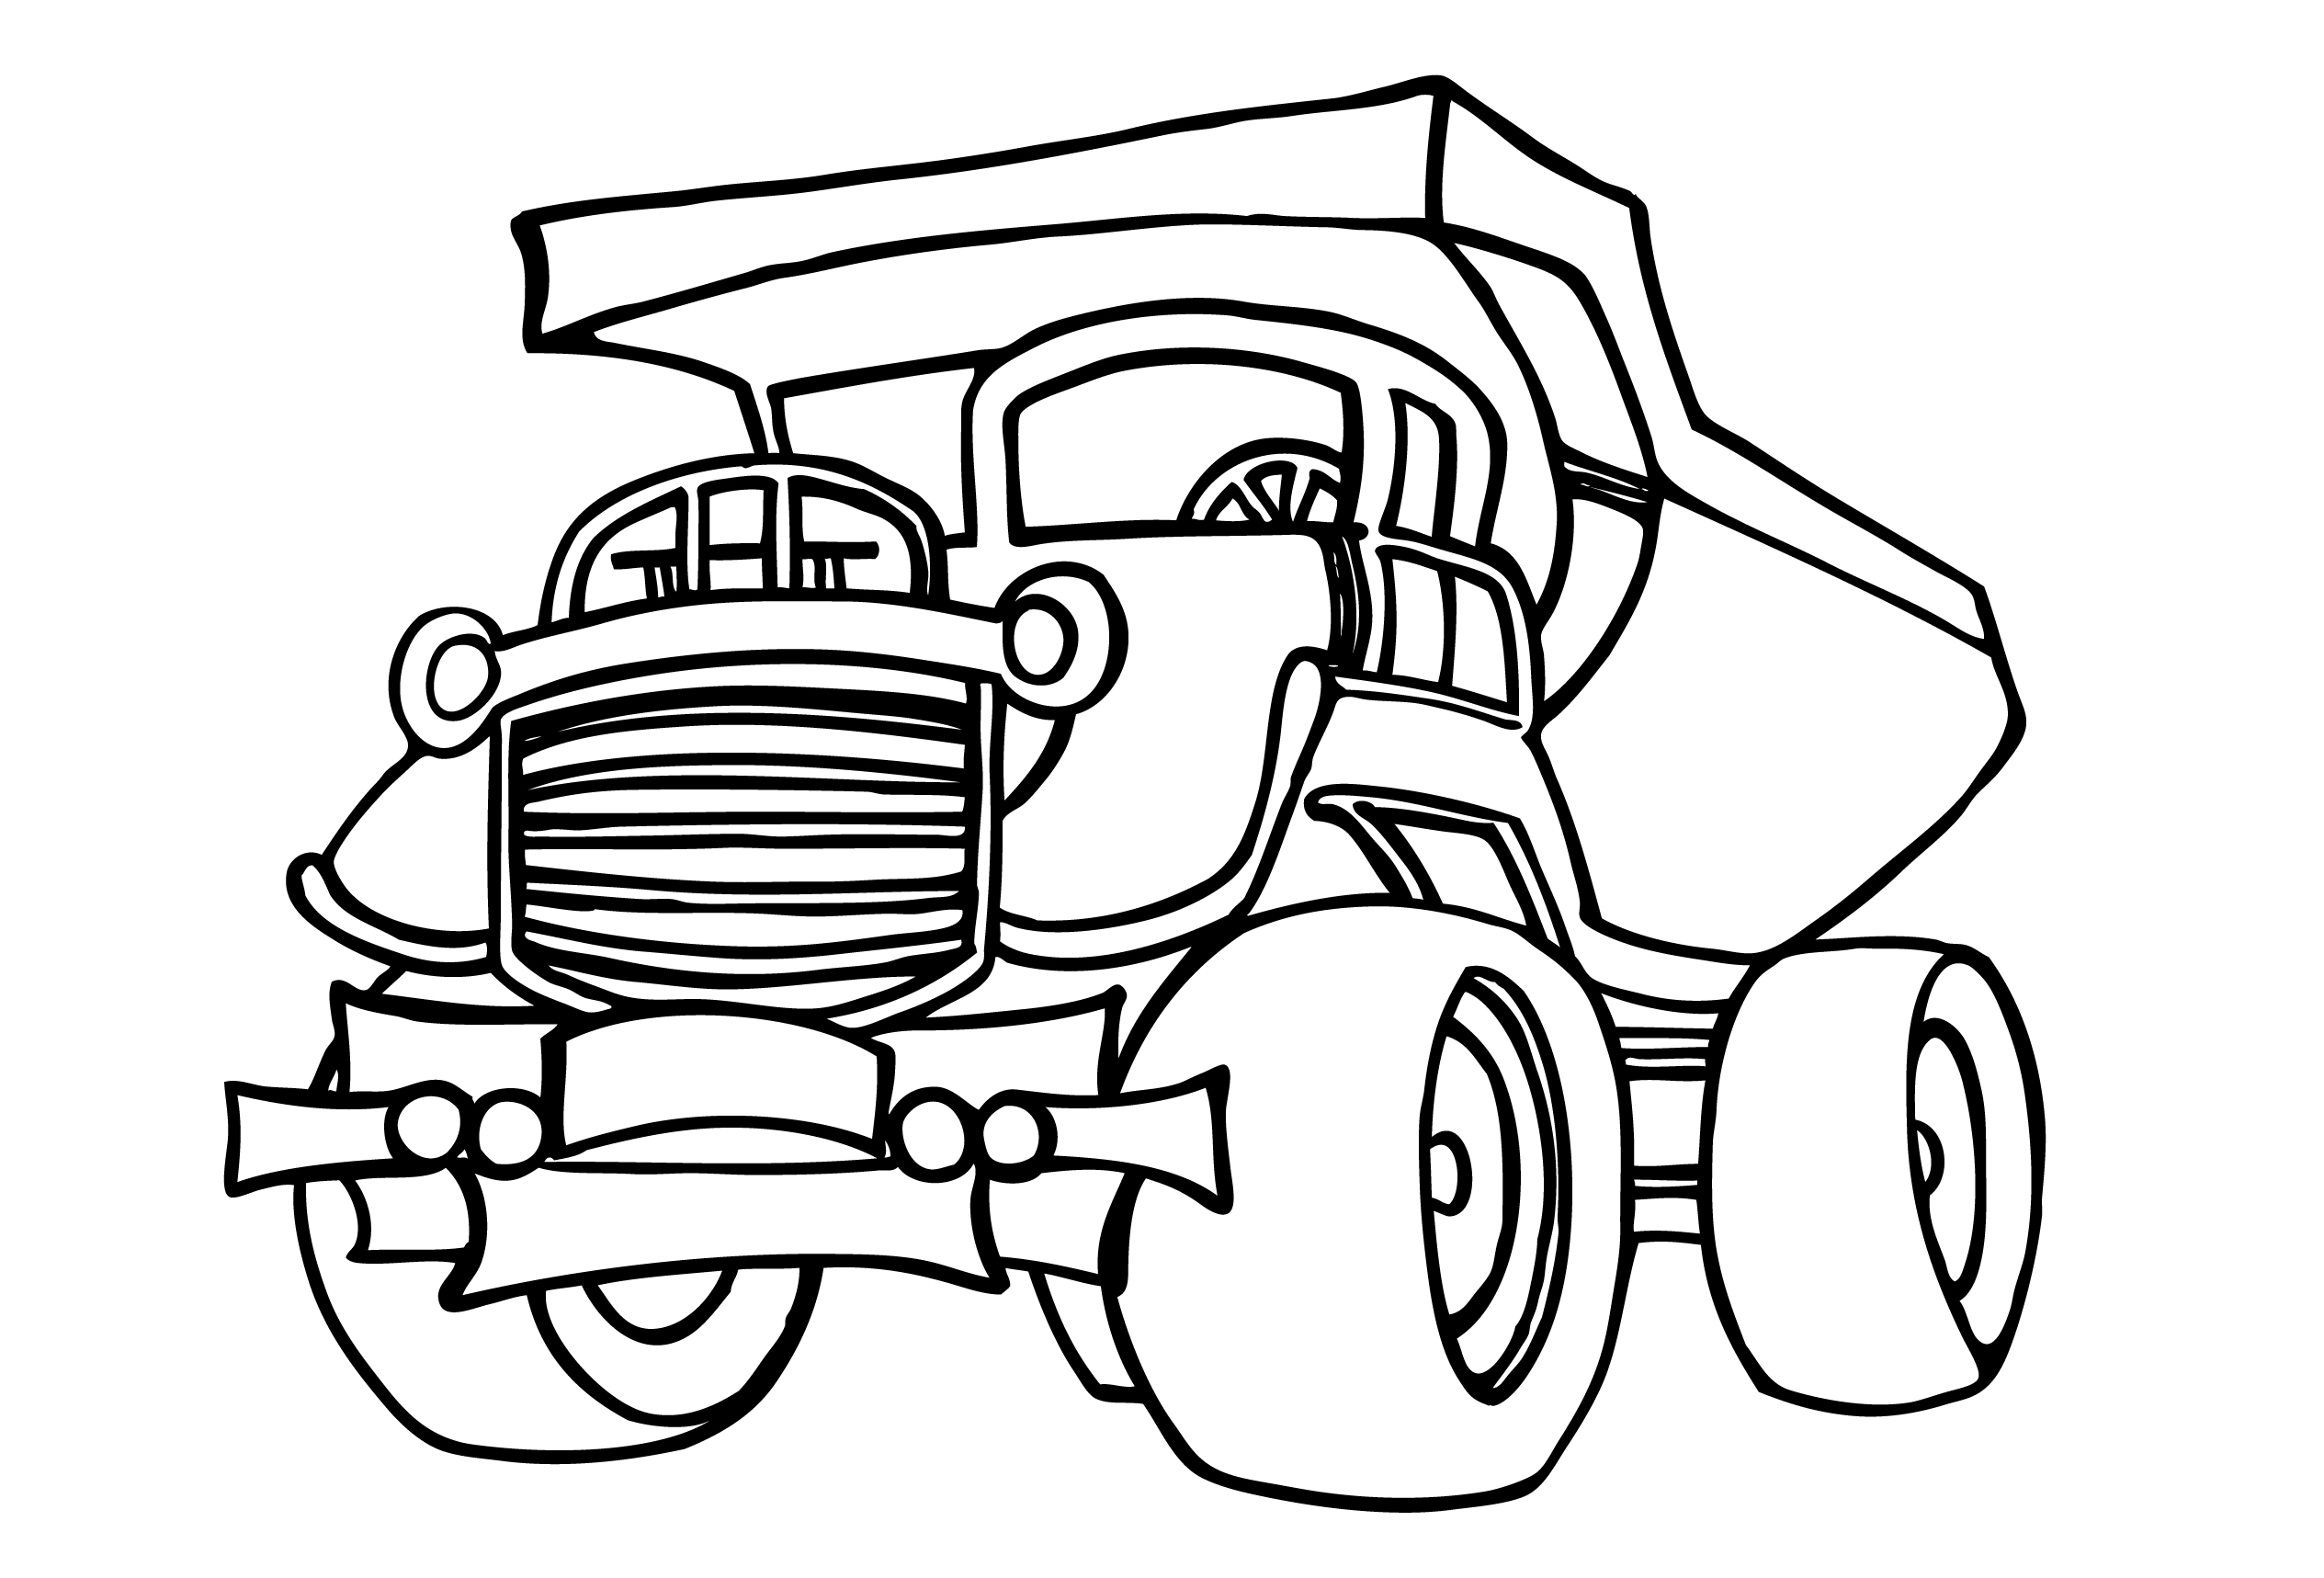 Free Construction Equipment Clipart, Download Free Clip